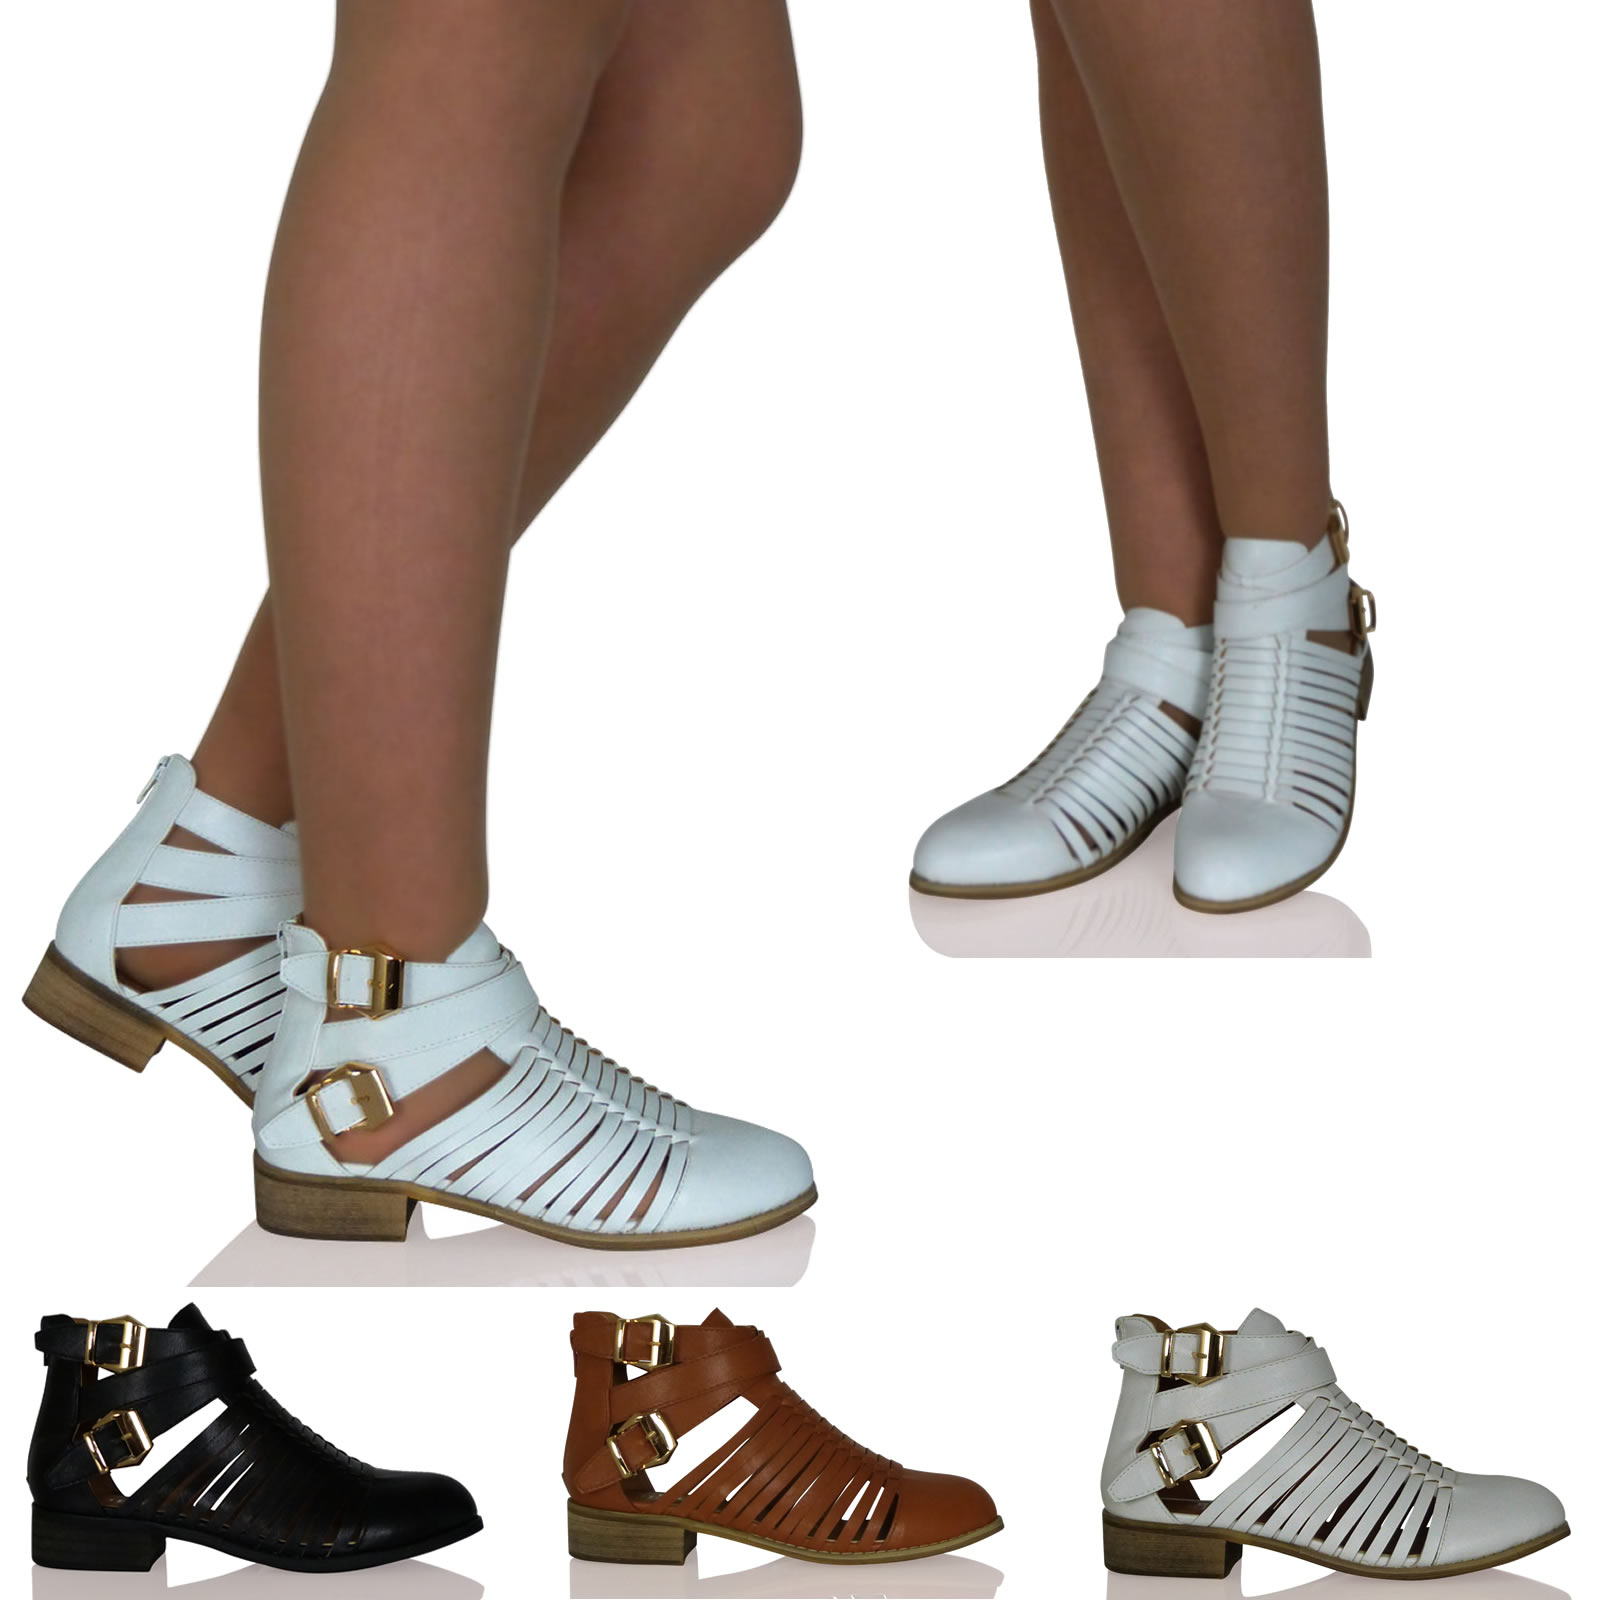 New Womens Ladies Cut-Out Strappy Gold Buckle Zip Up Ankle Booties Shoes Size